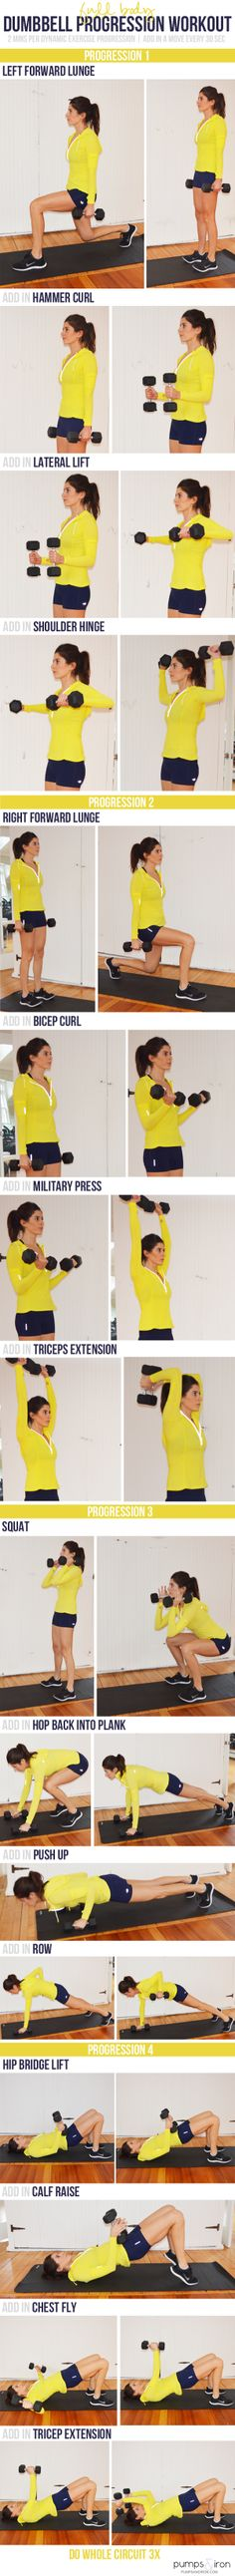 Dumbbell Progression Workout